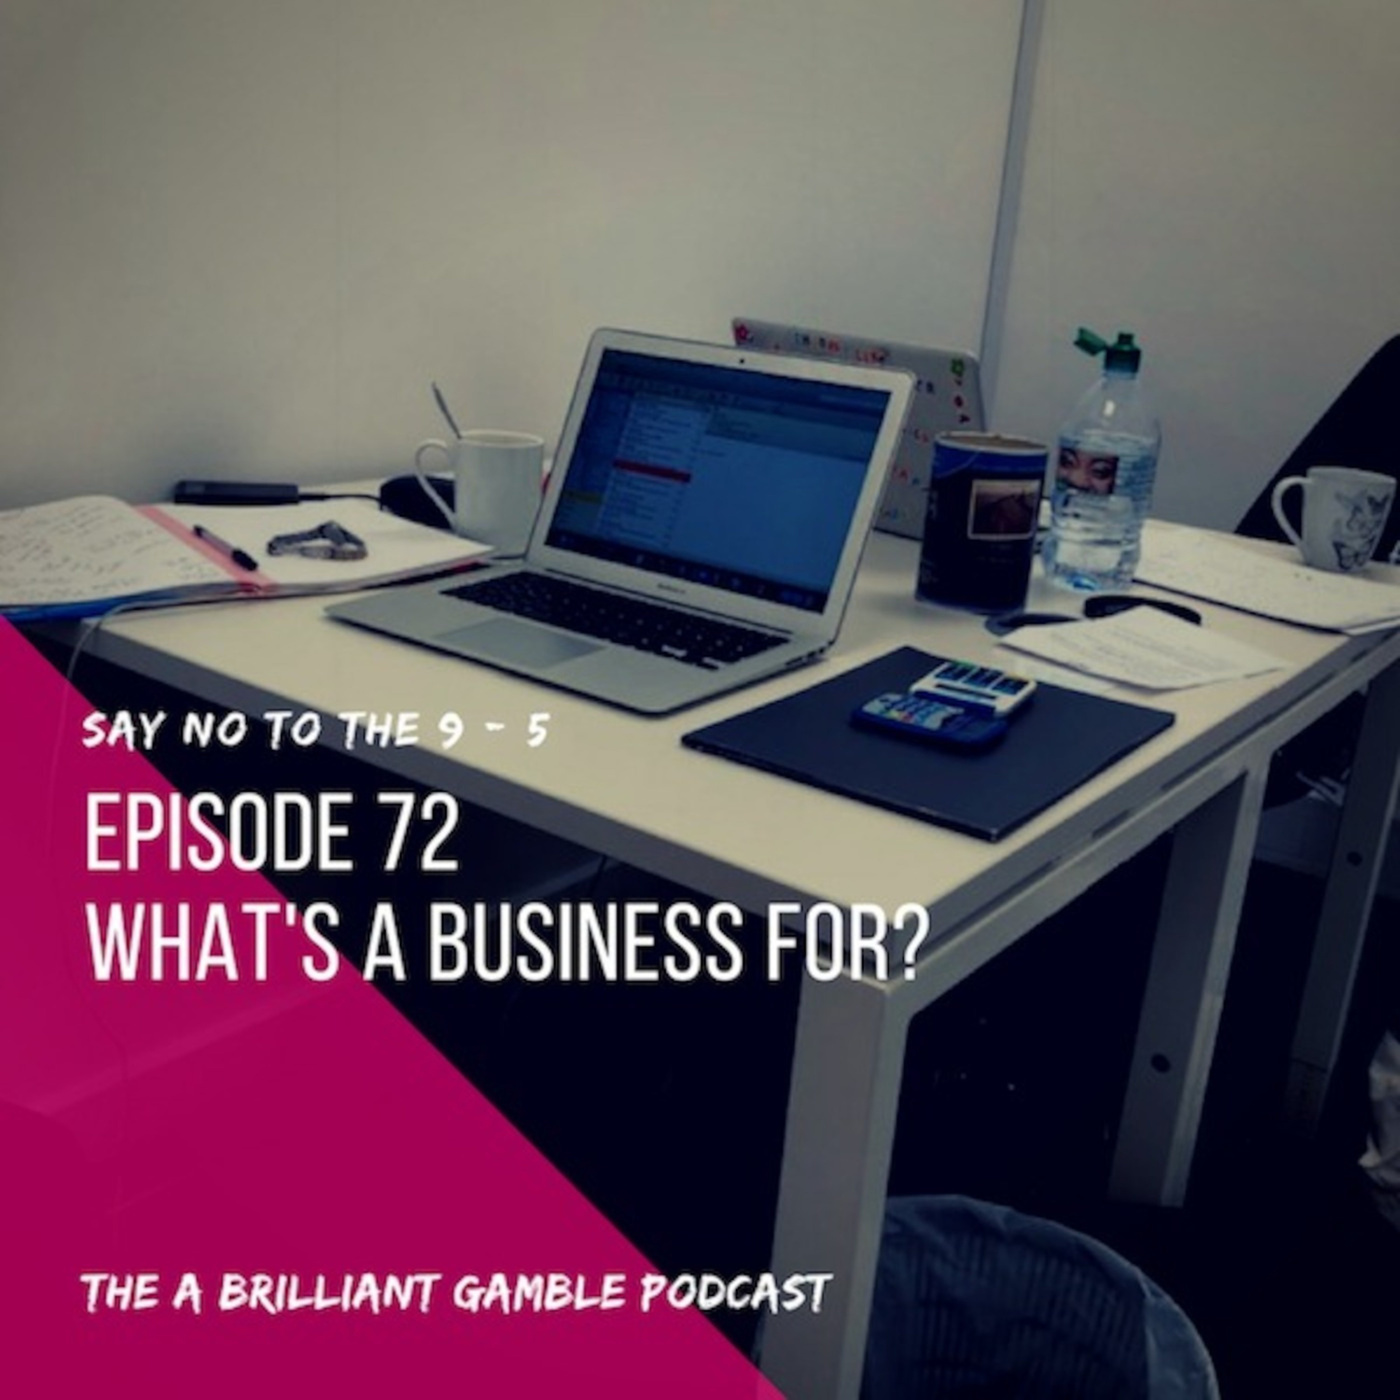 Episode 72: What's a business for?